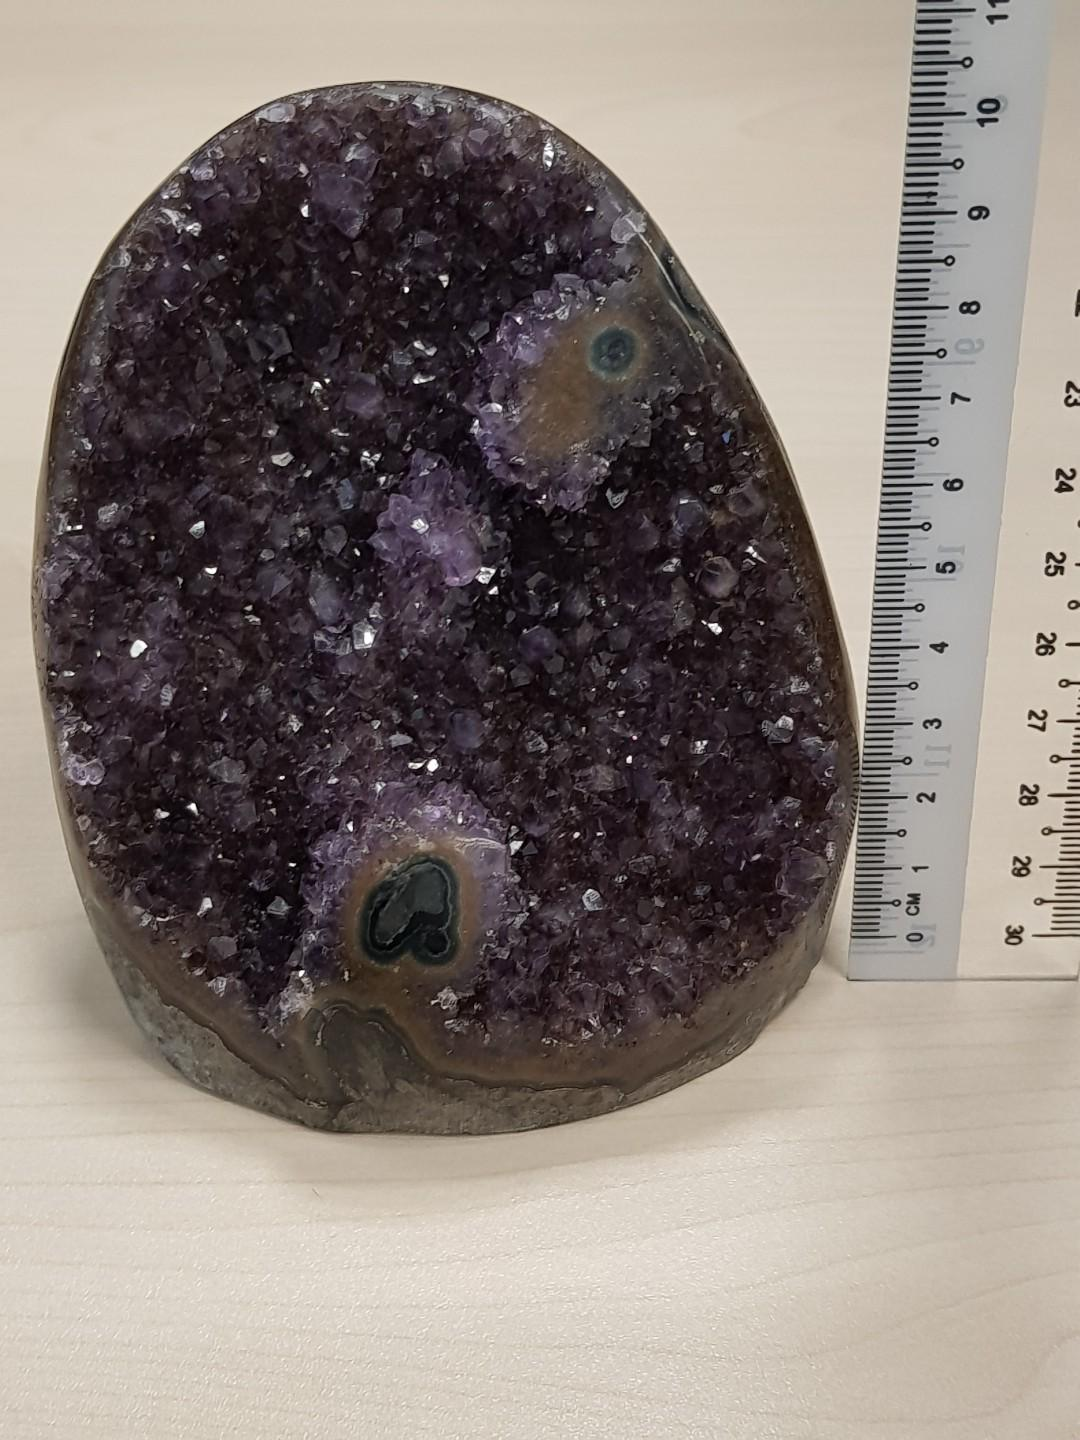 10% off Amethyst Crystal with 2 eyed flower pls refer to link for video **price is before discount